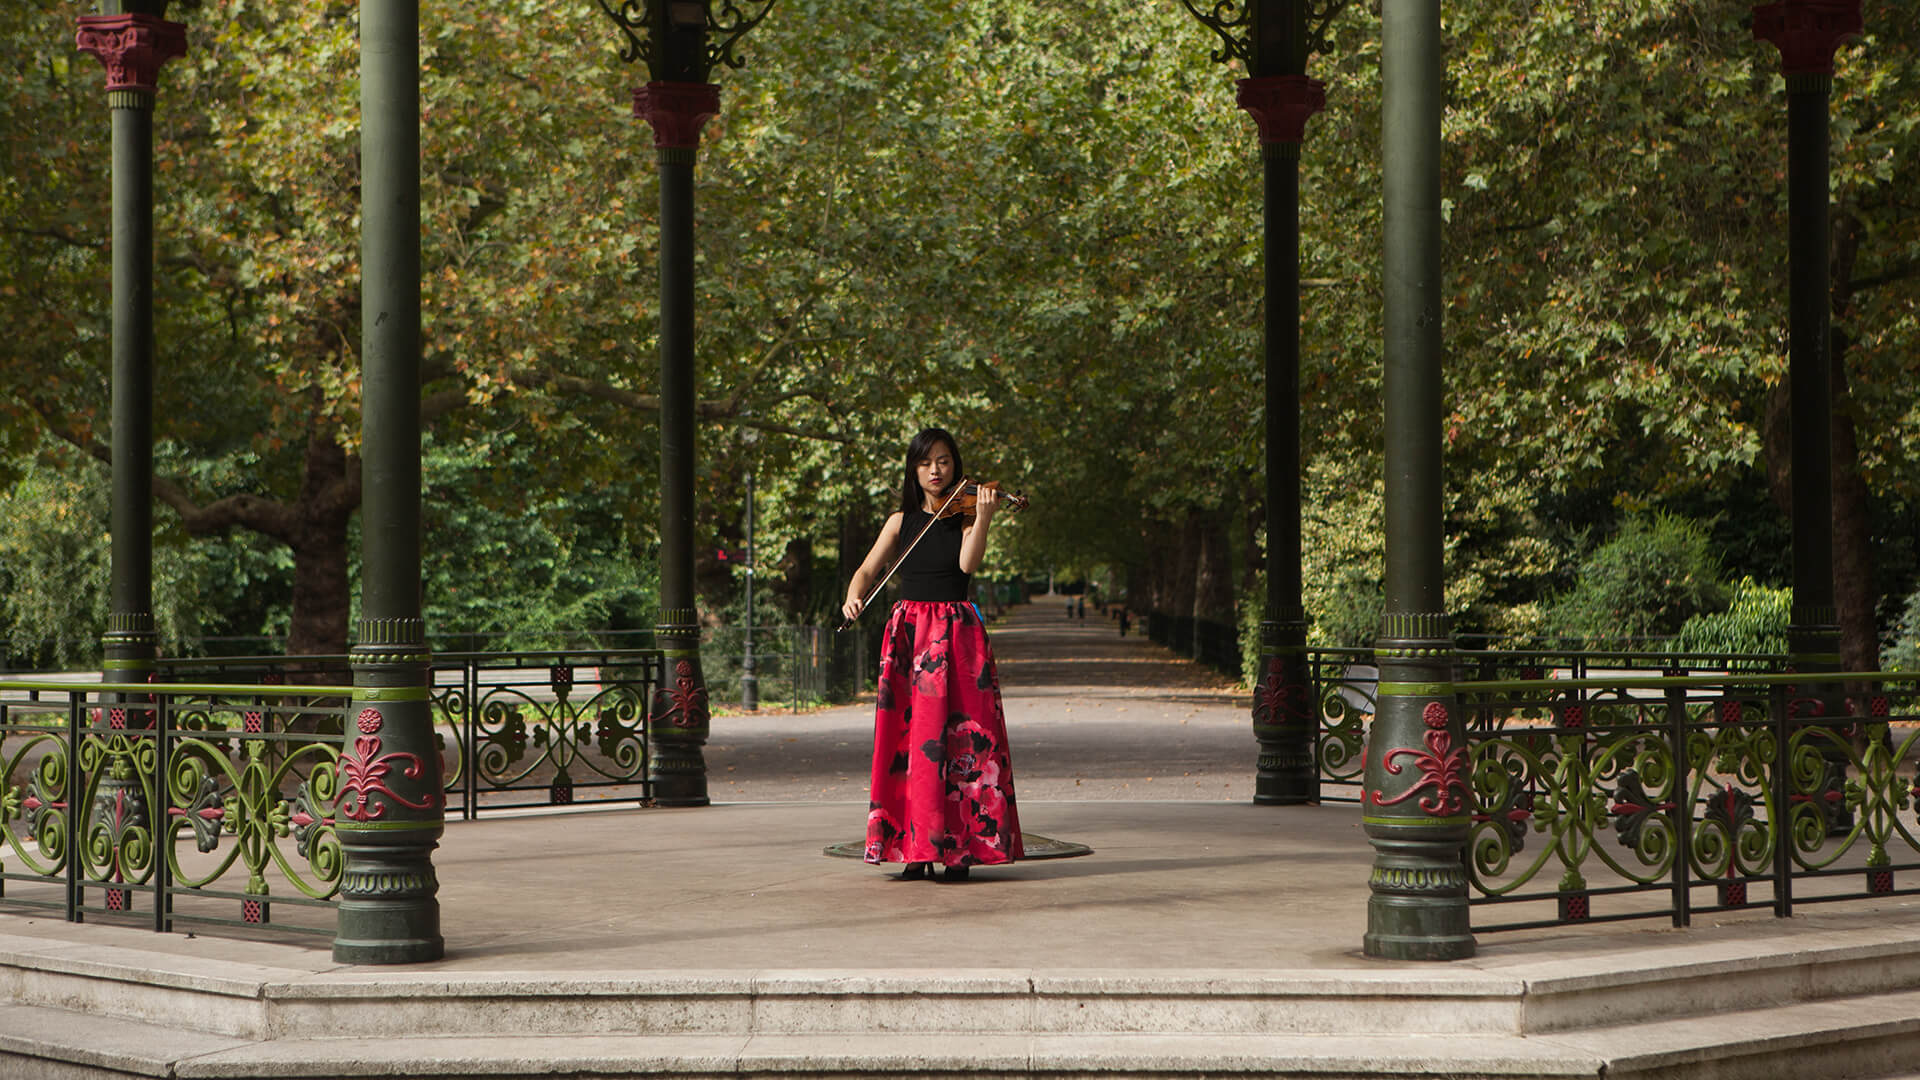 Minn-Mayoe-violinist-London-park2